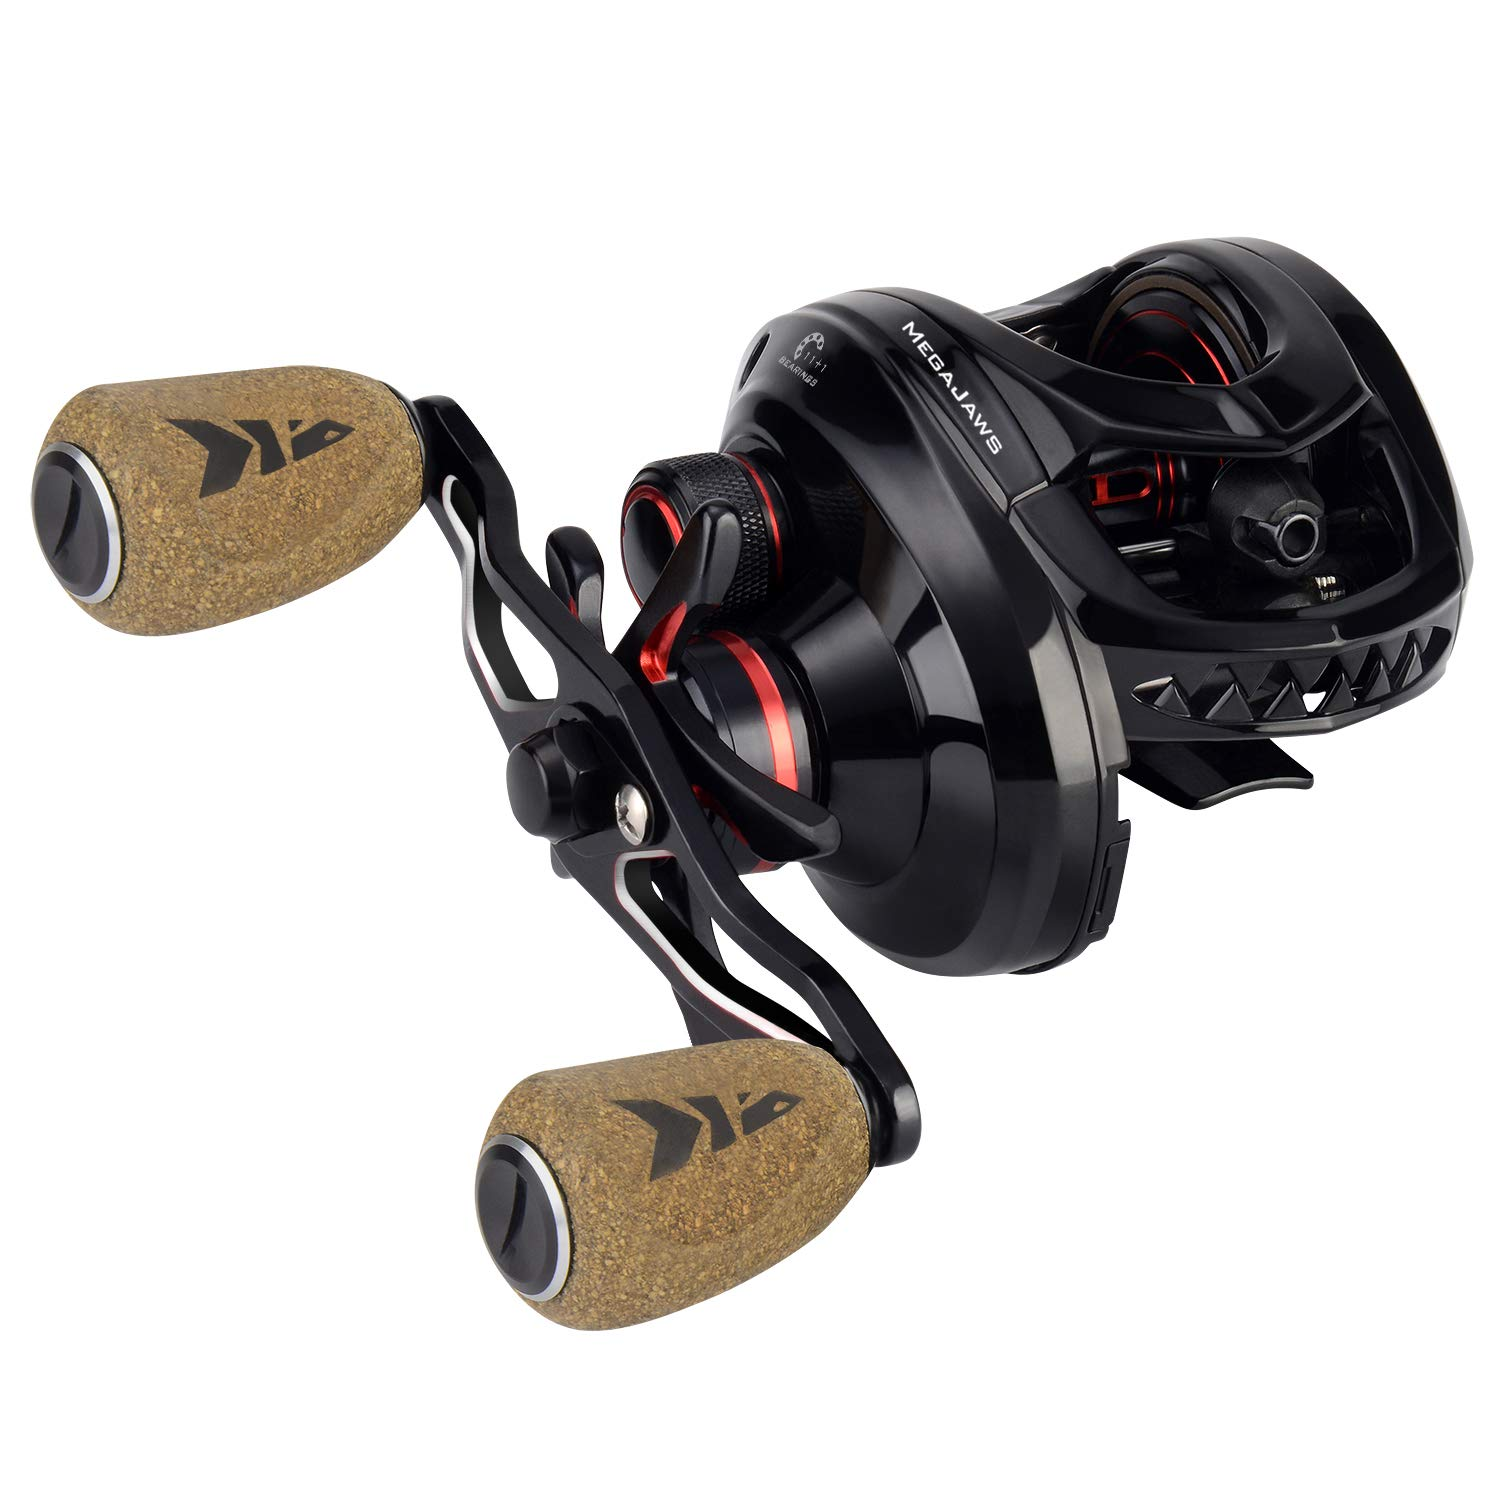 KastKing MegaJaws Baitcasting Reel, Industry First Color-Coded Gear Ratios from 5.4 1 to 9.1 1, Fishing Reel with 11 1 High Performance BB, Magnetic Braking System, 17.6 Lb Carbon Fiber Disc Drag